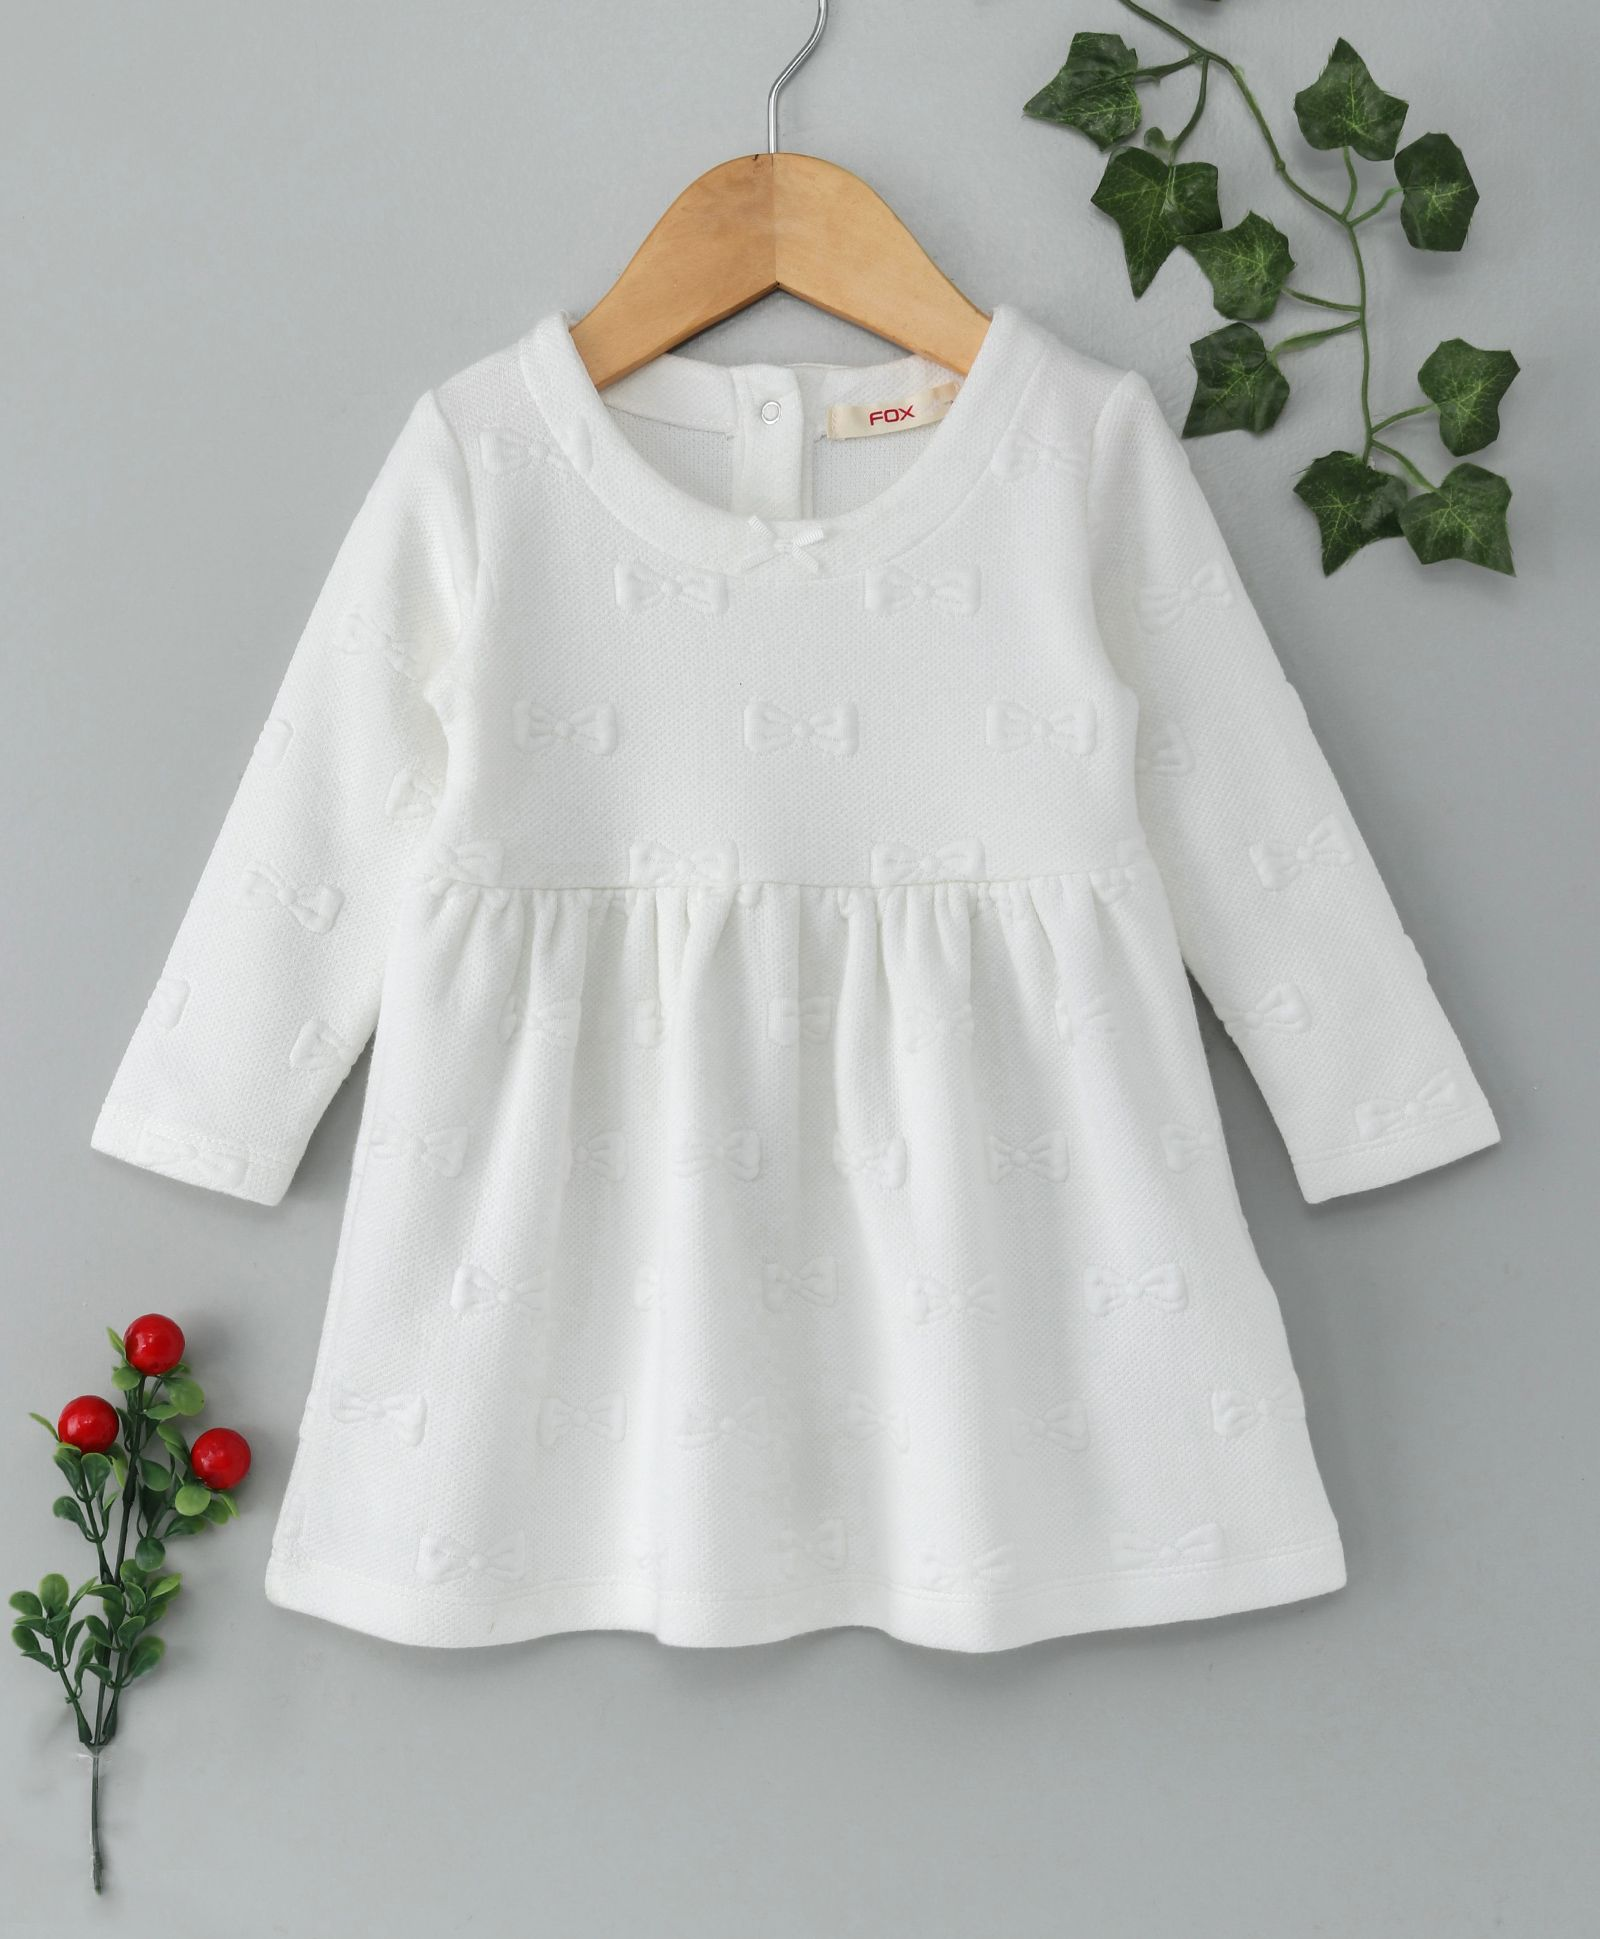 8bc9ac2a7 Buy Fox Baby Full Sleeves Frock Bow Design Off White for Girls (12 ...